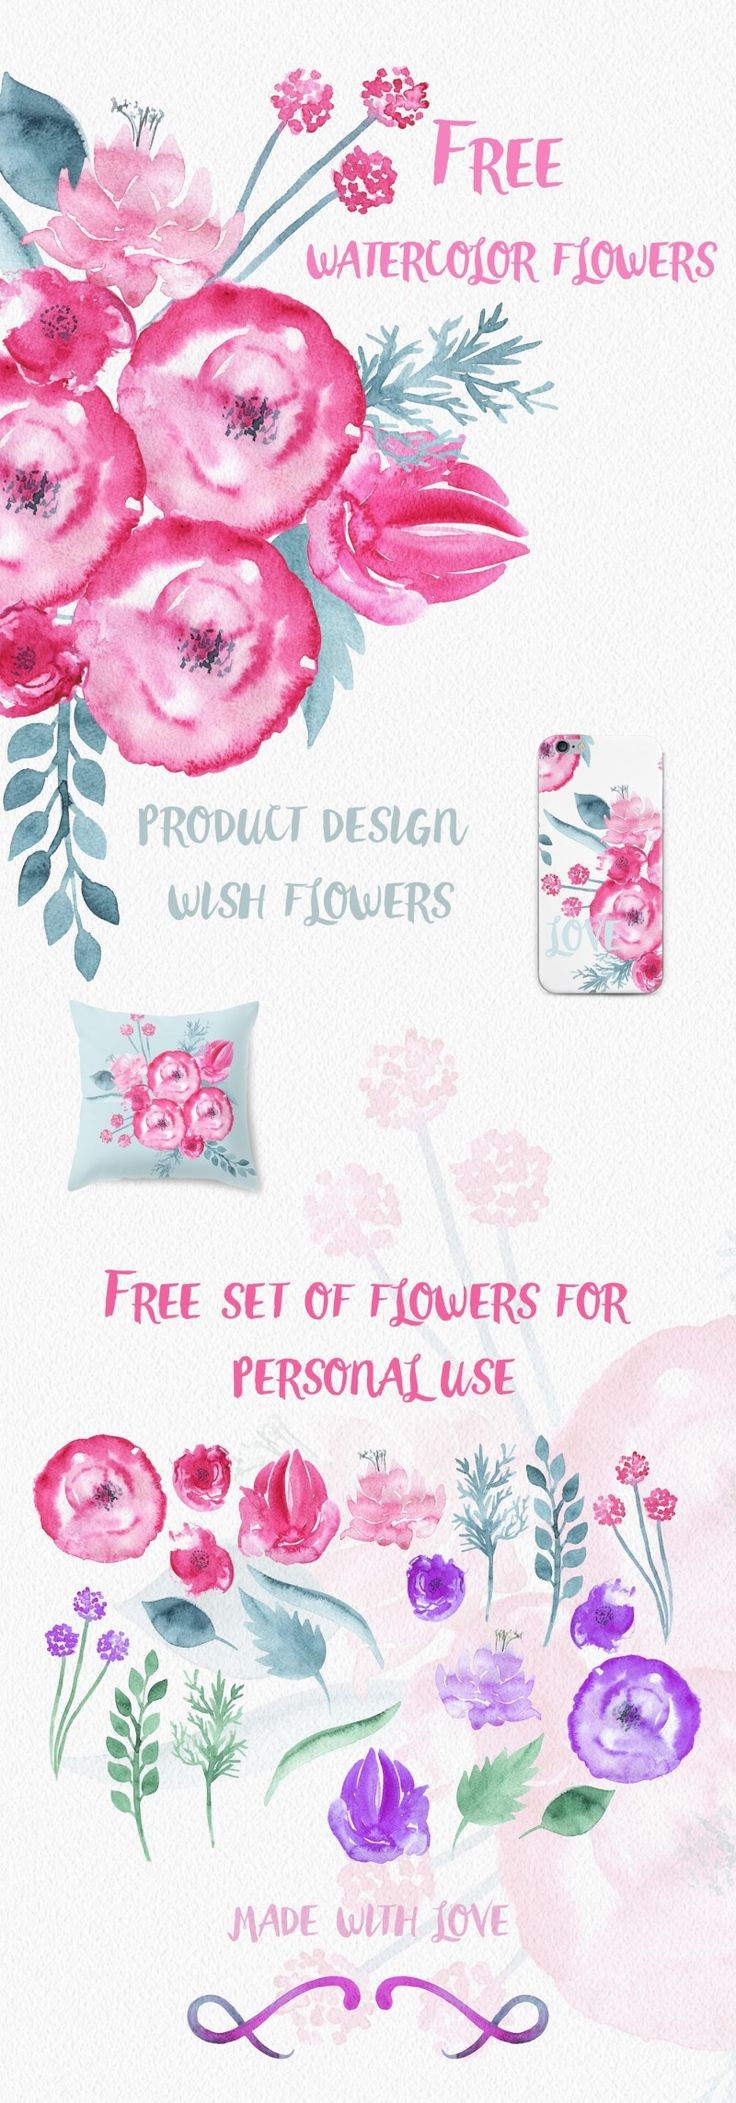 Free Watercolor Flower Set - click on image to download